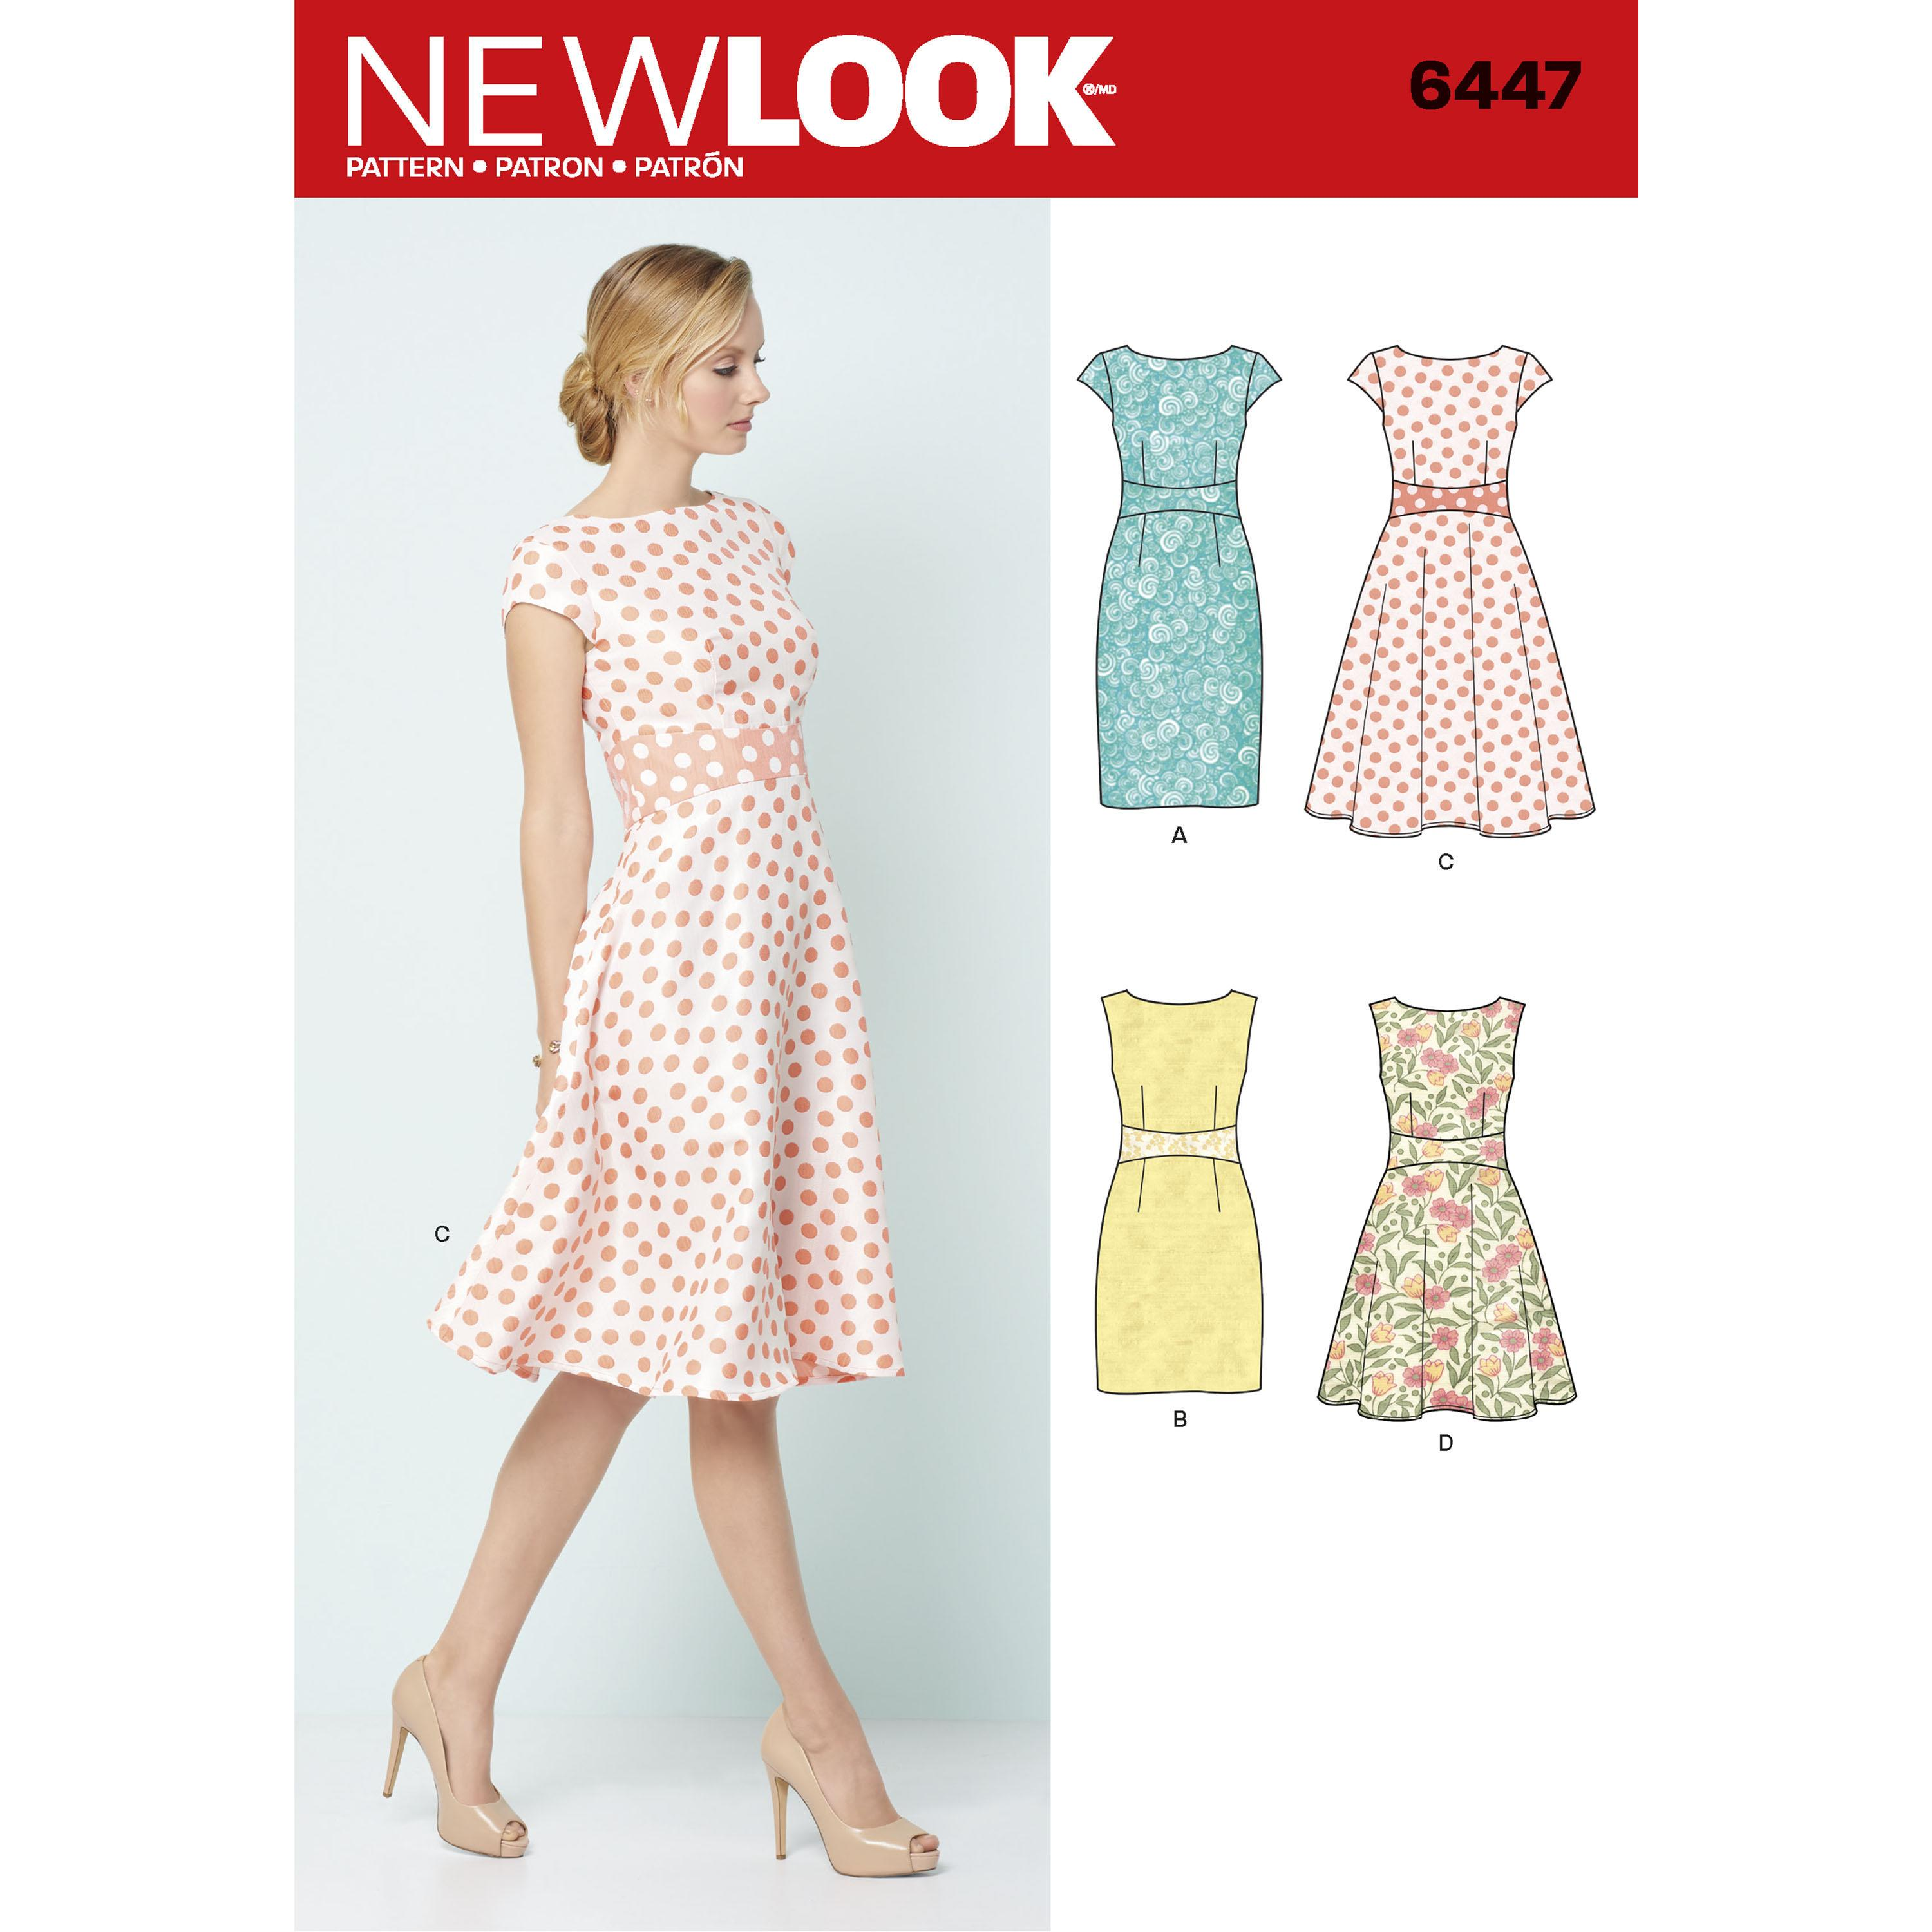 NewLook N6447 Misses' Dresses